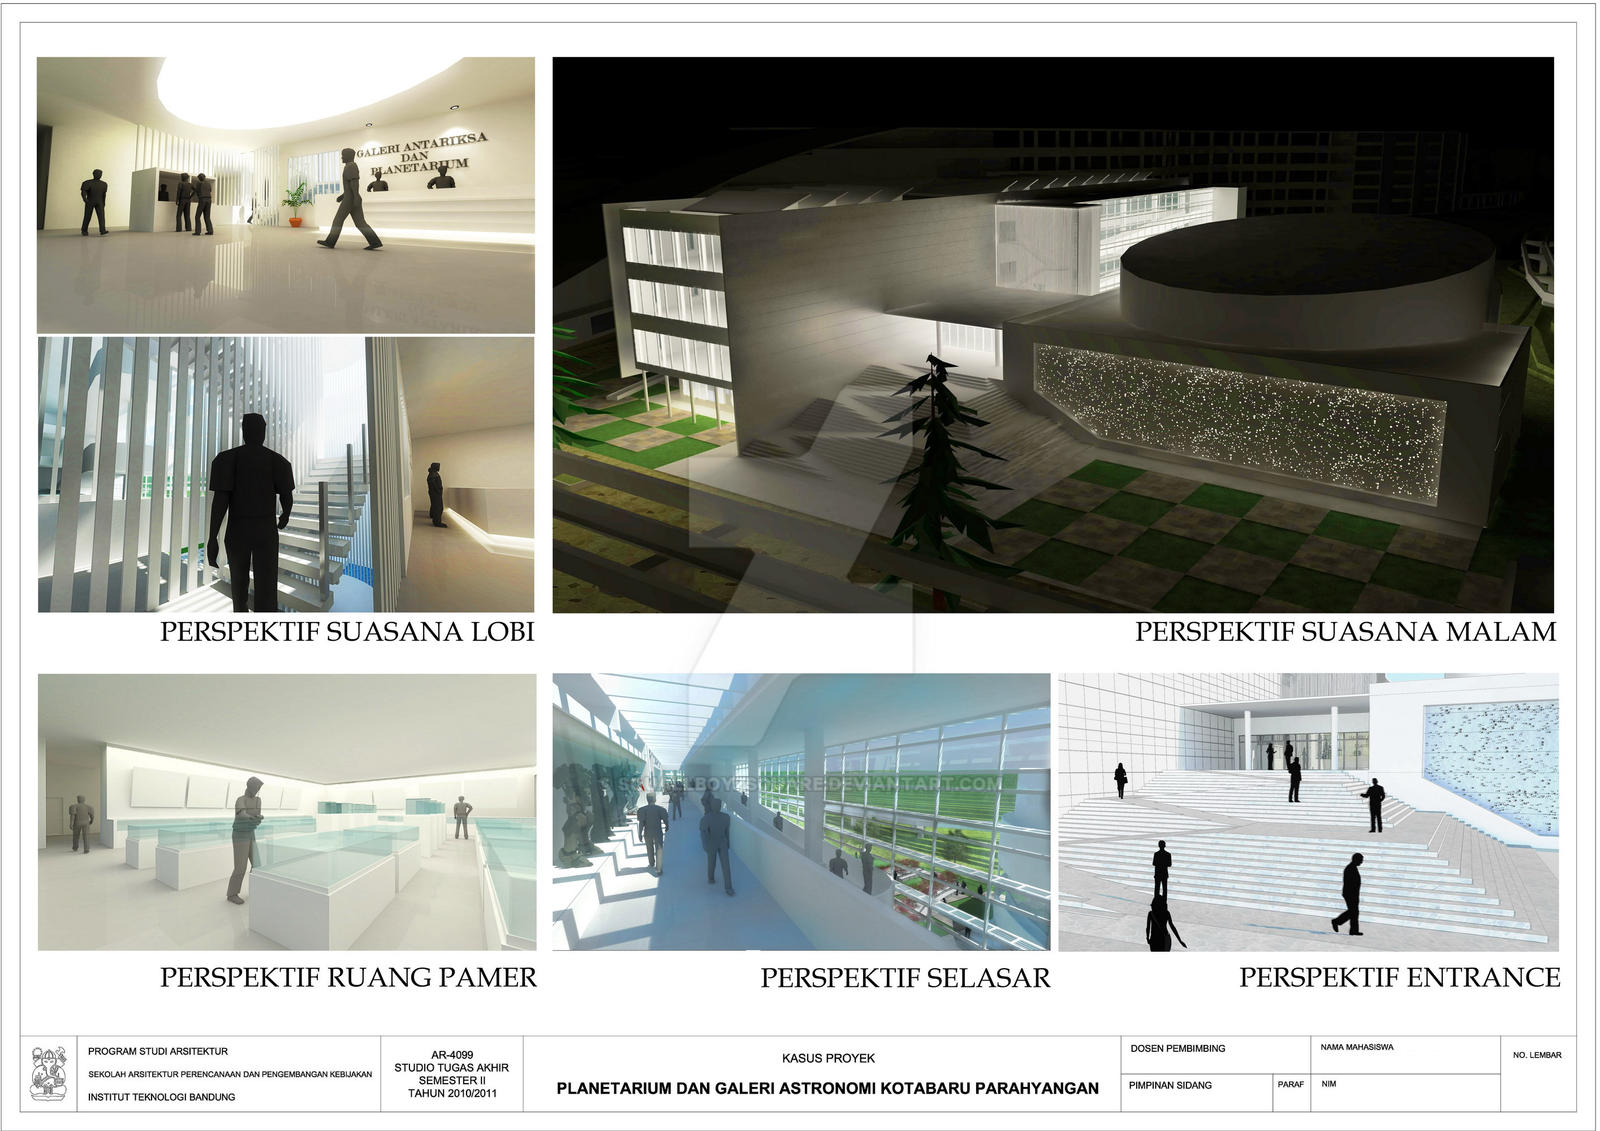 Architecture final project 07 by squallboyzsquare on for Find architects online